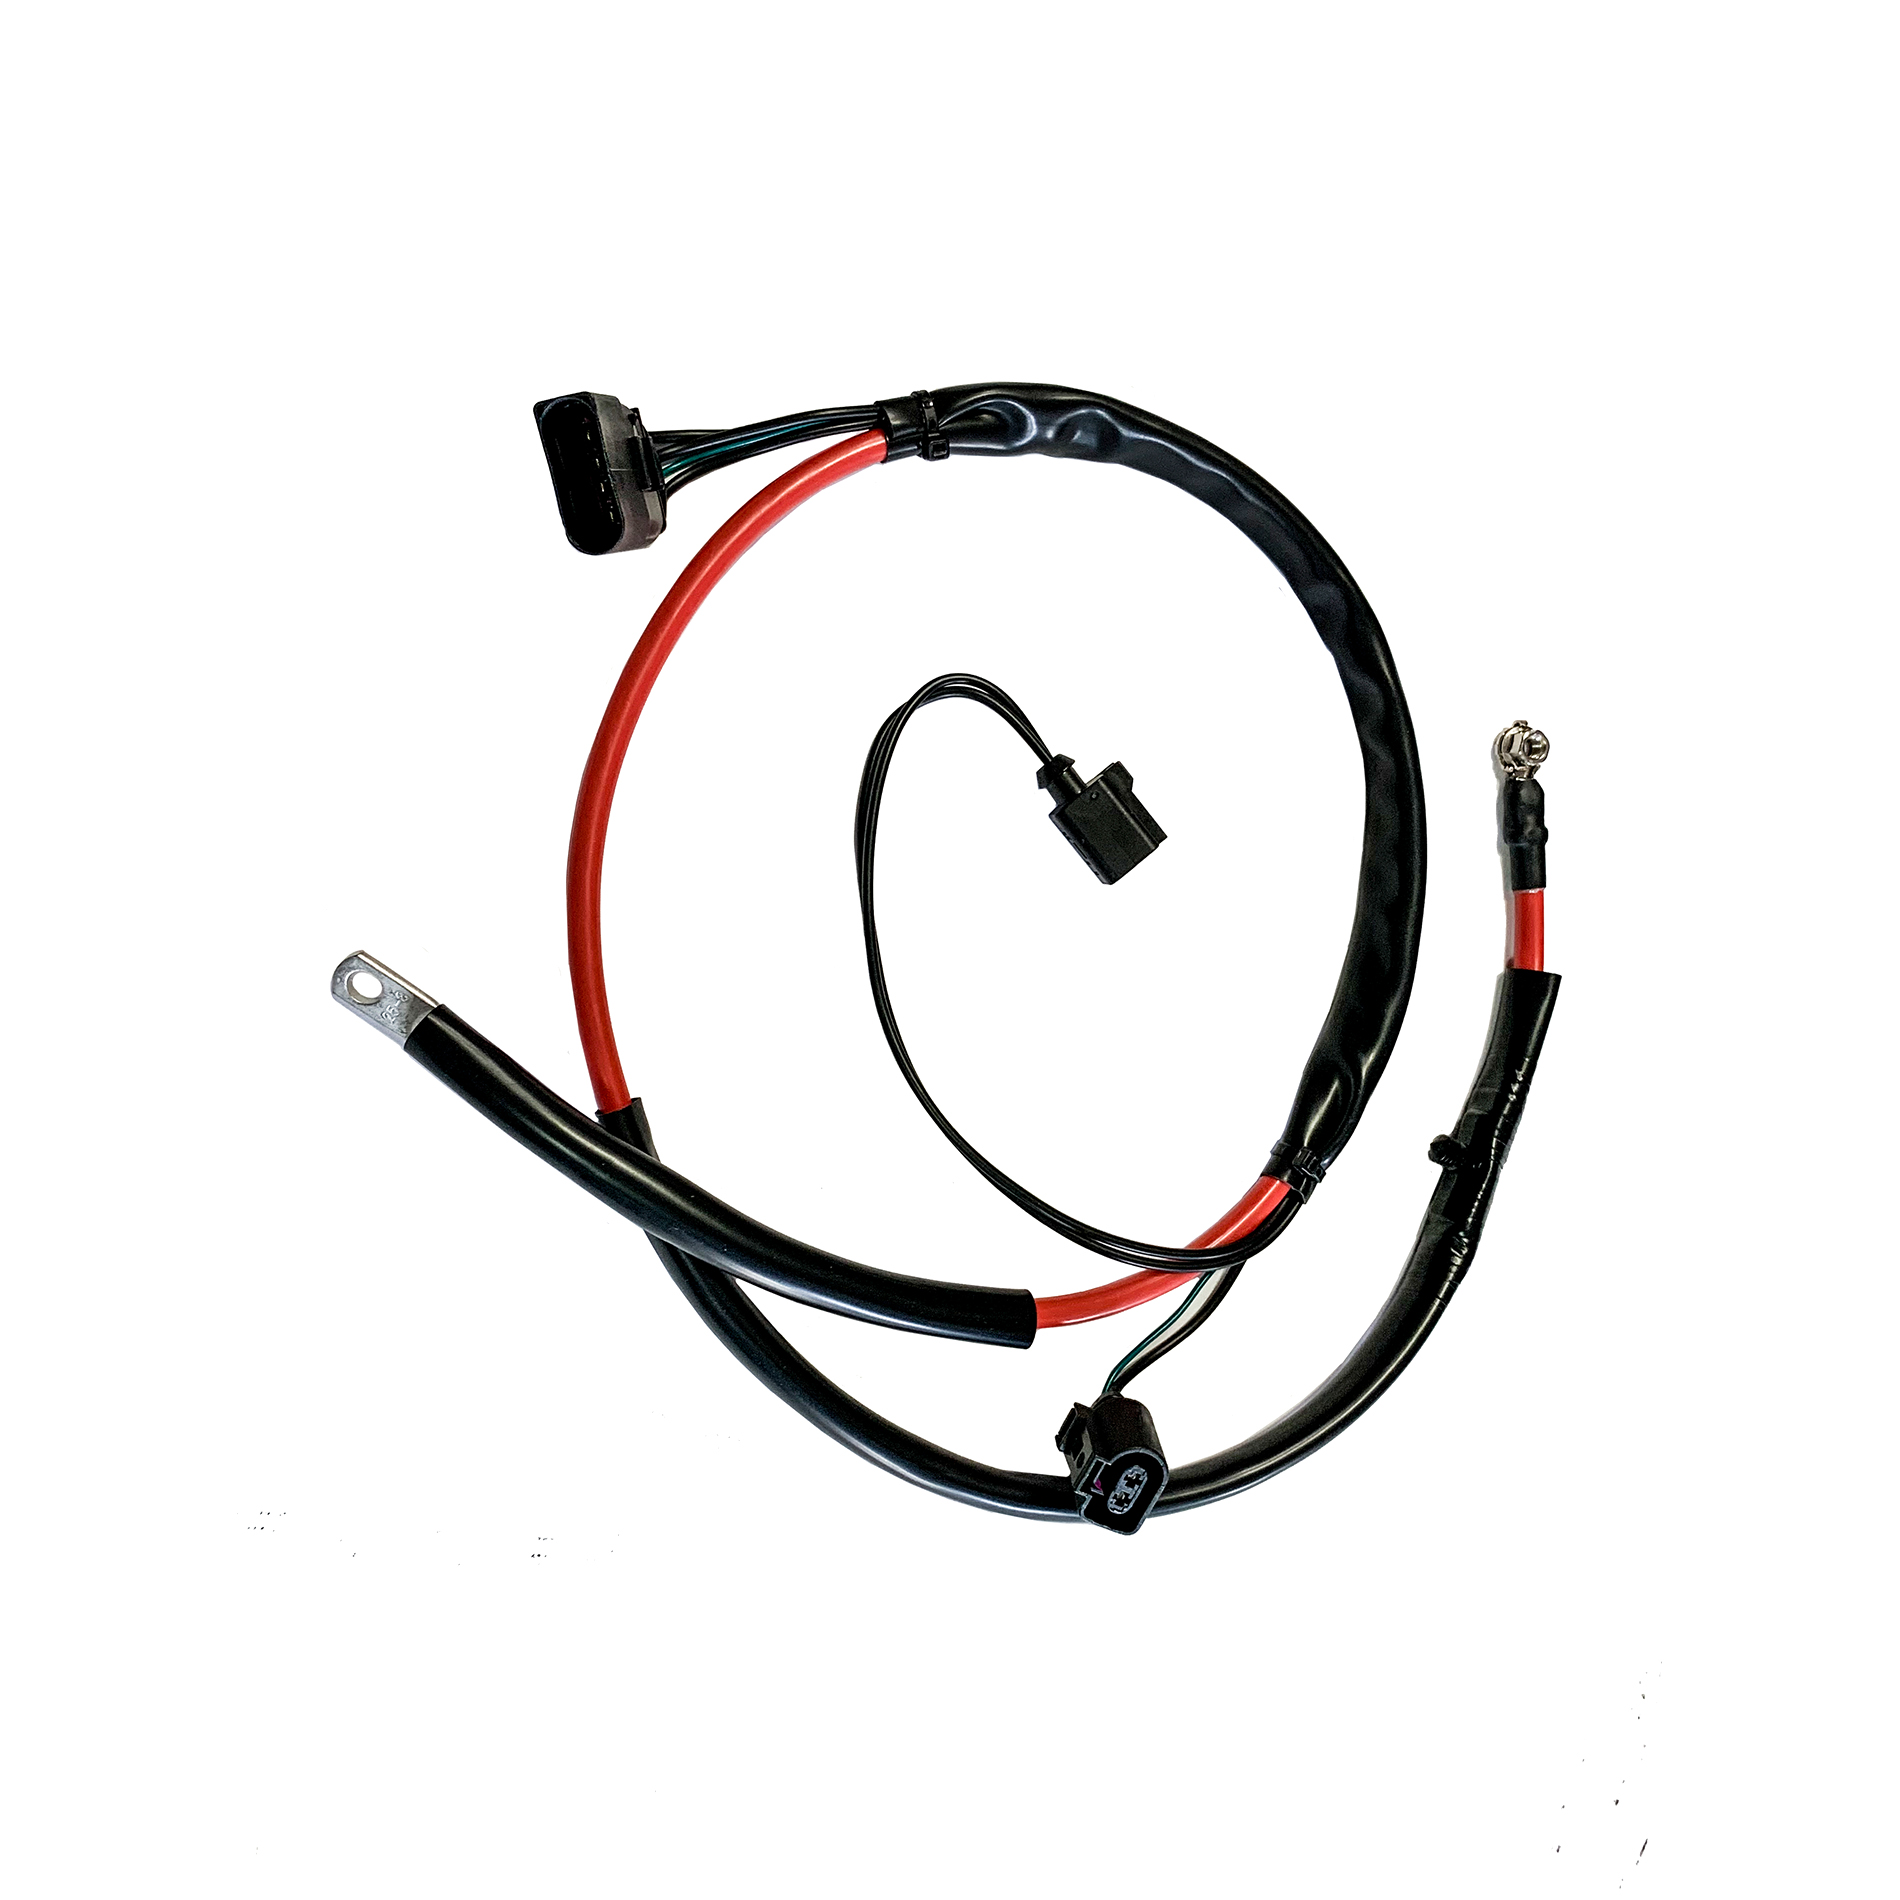 Alternator Wiring Harness Red For VW Beetle GL Turbo 1999